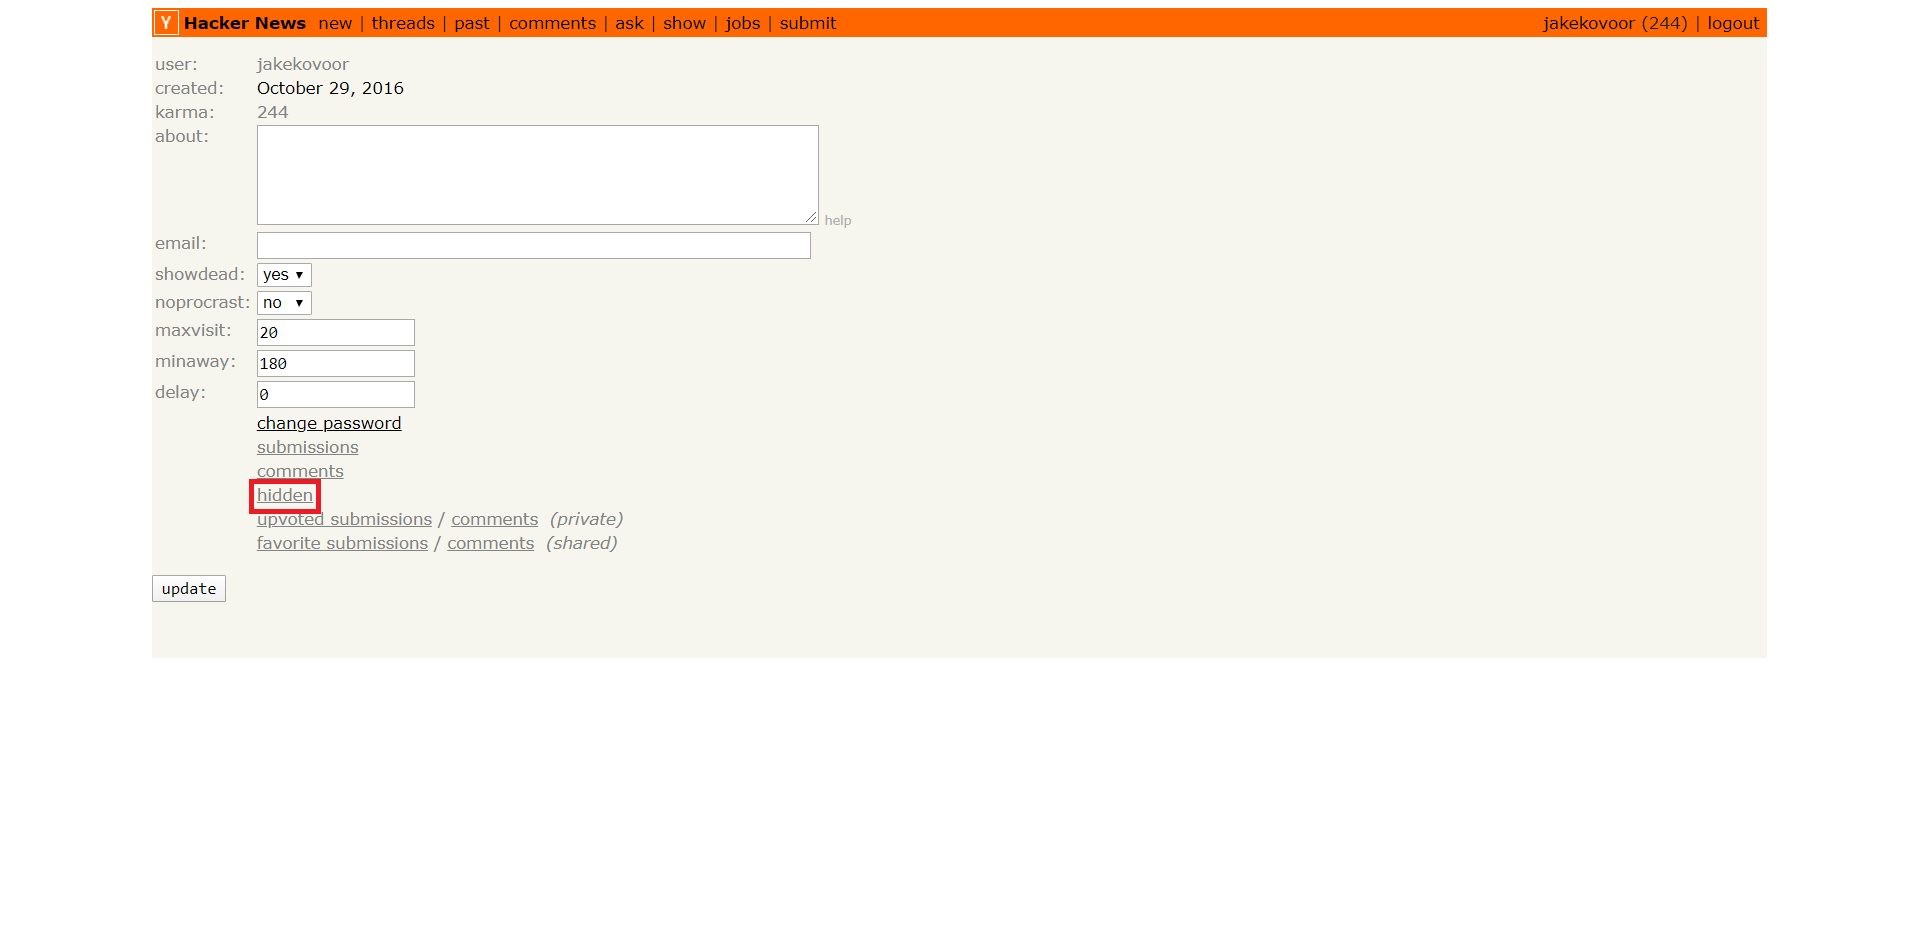 unhide stories on Hacker News